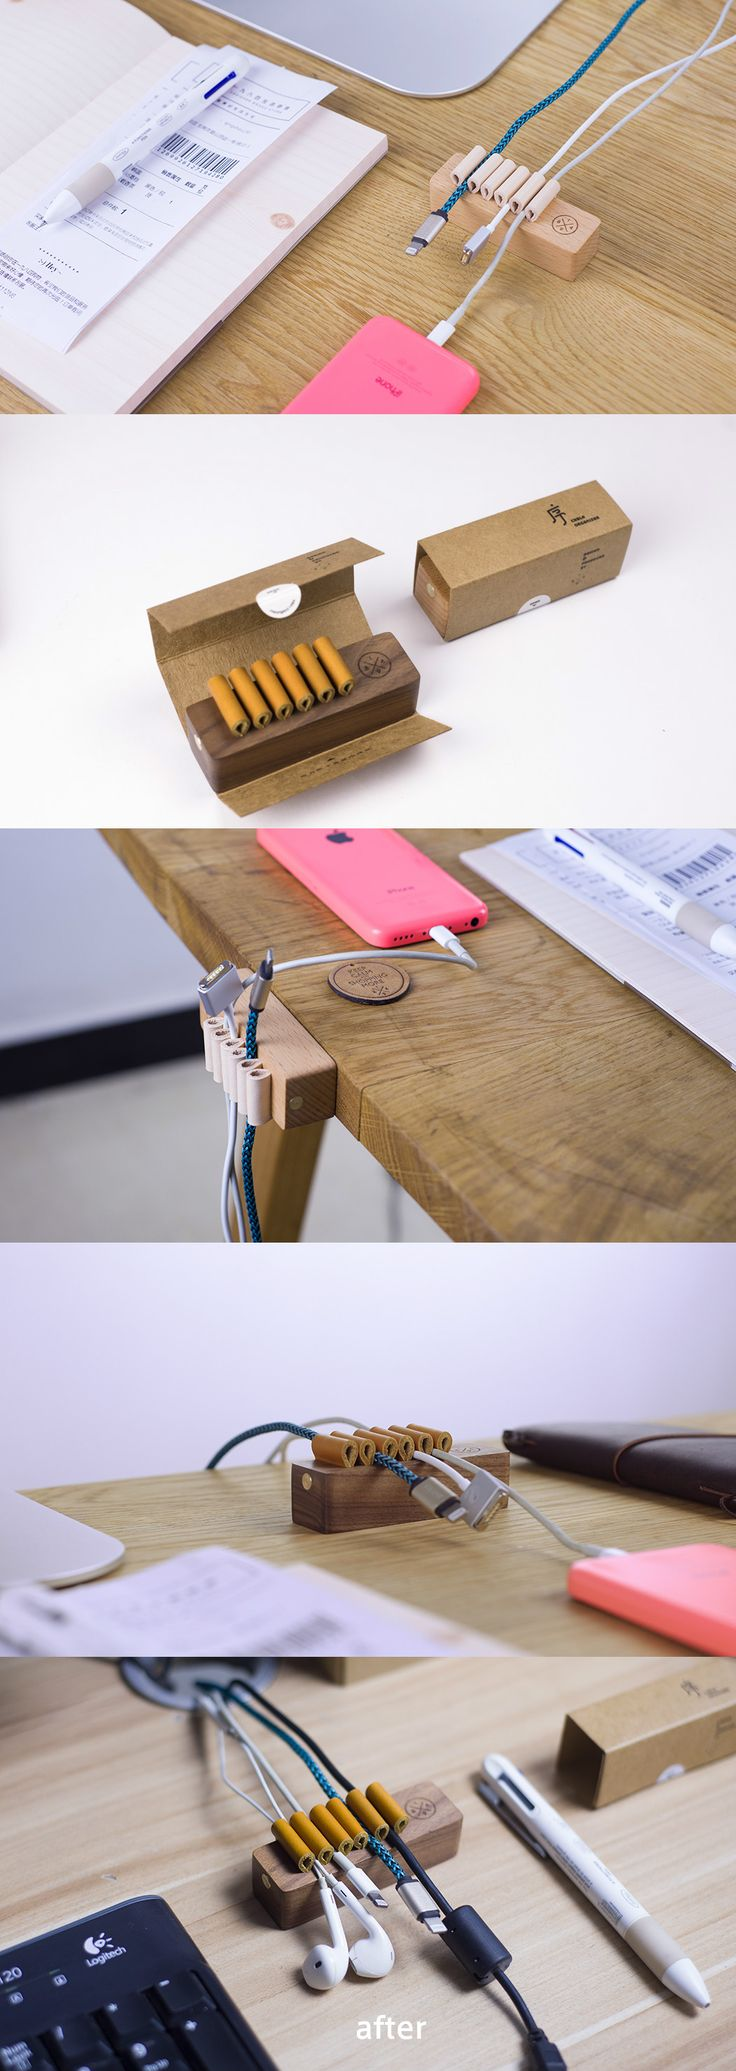 """Named """"Xu"""" which means orderly in Chinese, this cable organizer keeps your cables in check without knocking your desktop style. #Cable #Keeper #Organizer #Desk #YankoDesign #Office"""